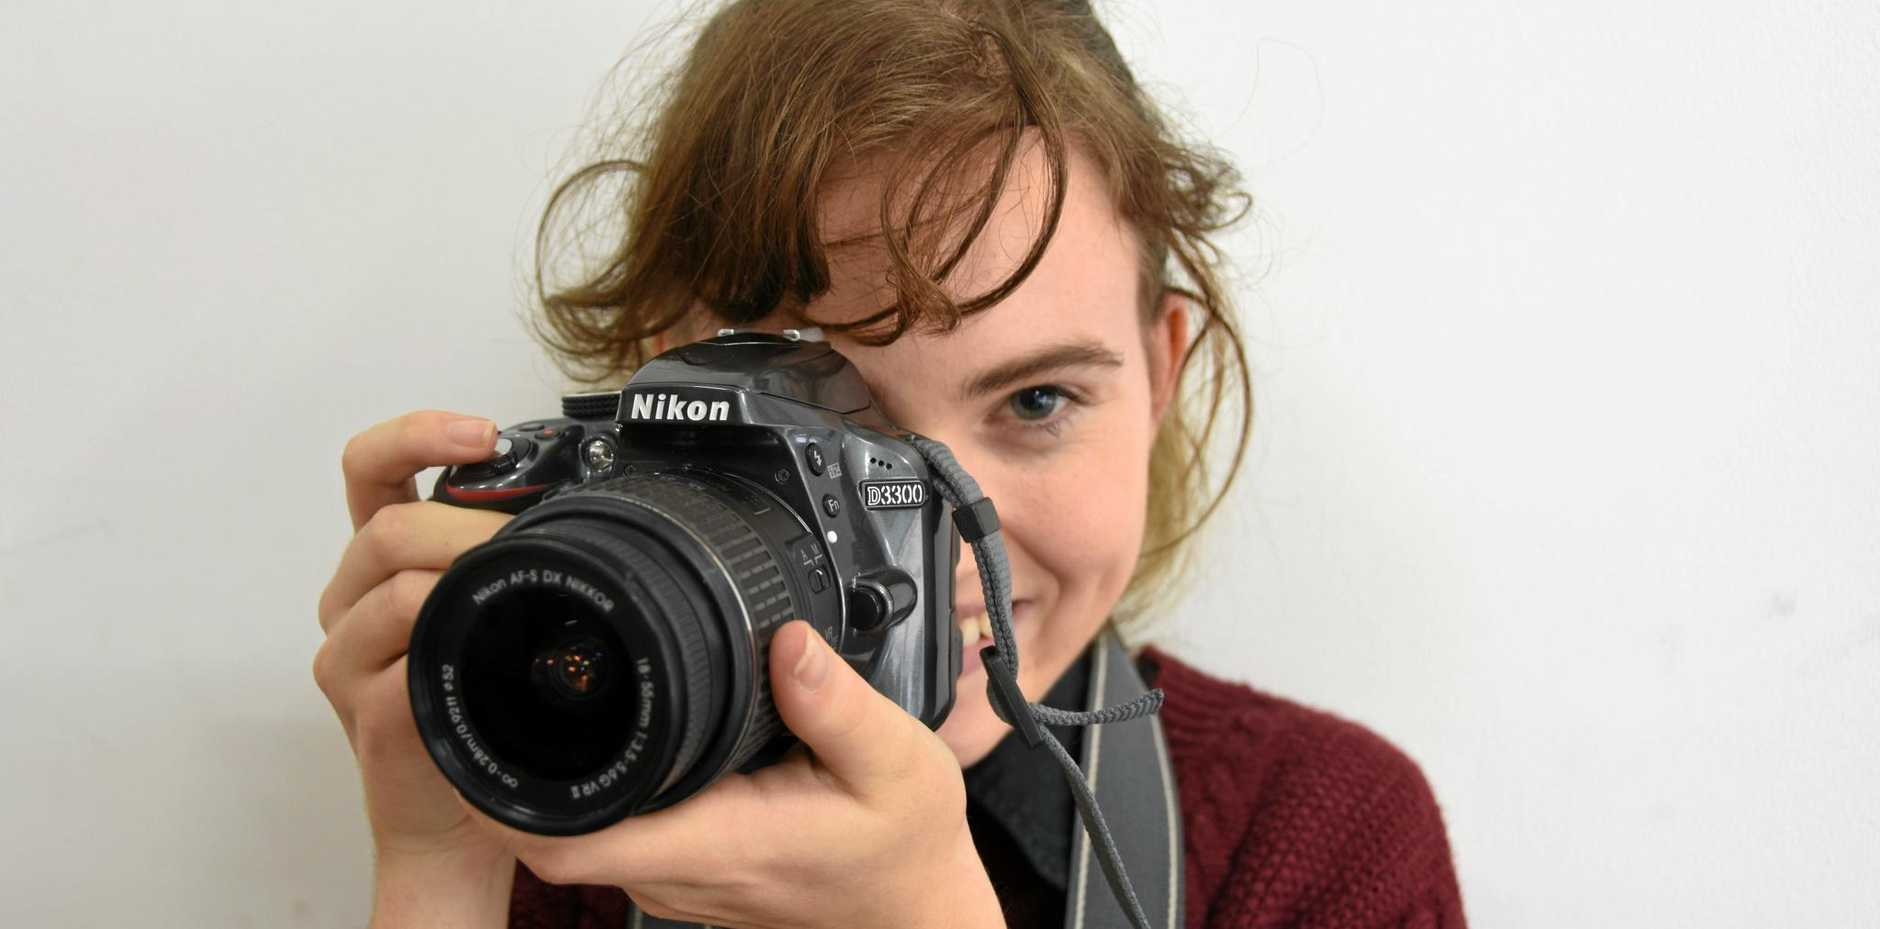 NEWSFLASH: 19-year-old Charlet Priestley wants to work in journalism and the news, preferably behind the scenes as an editor or producer.